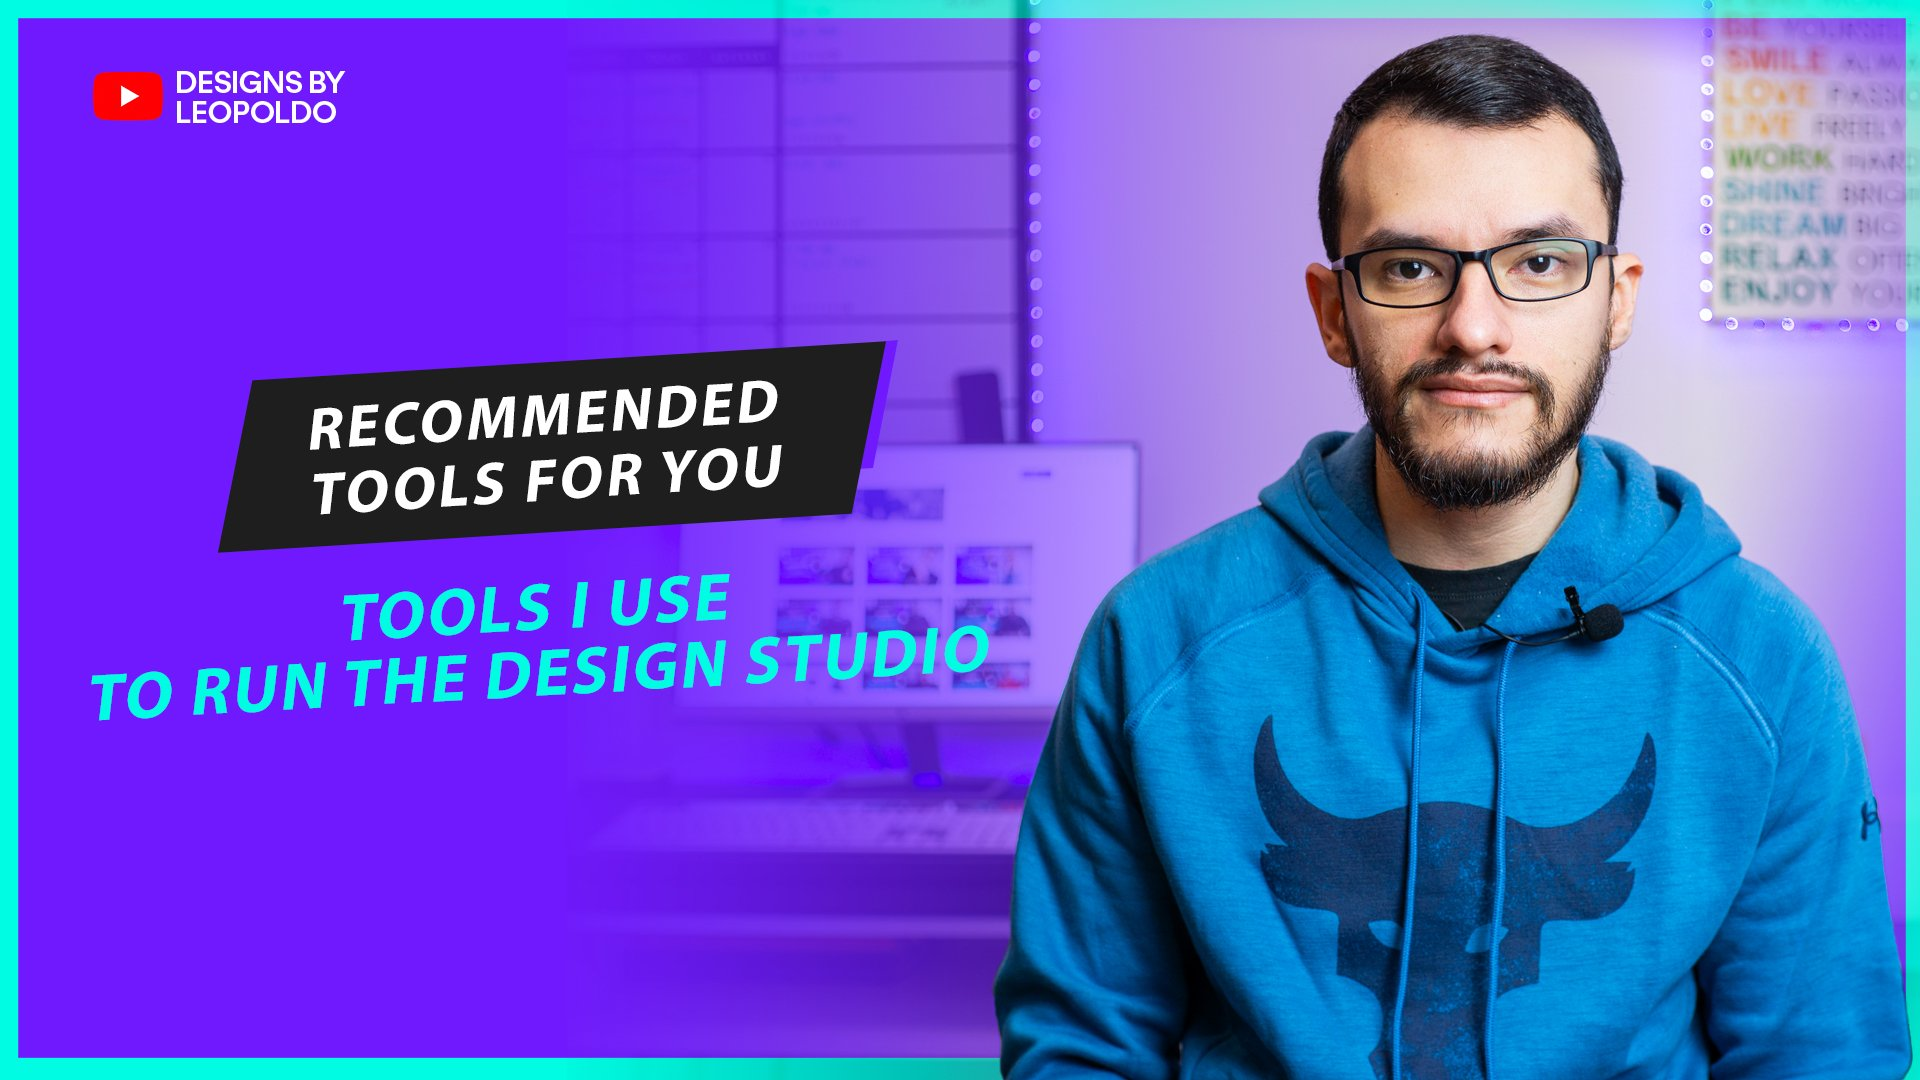 recommended tools to build a design studio